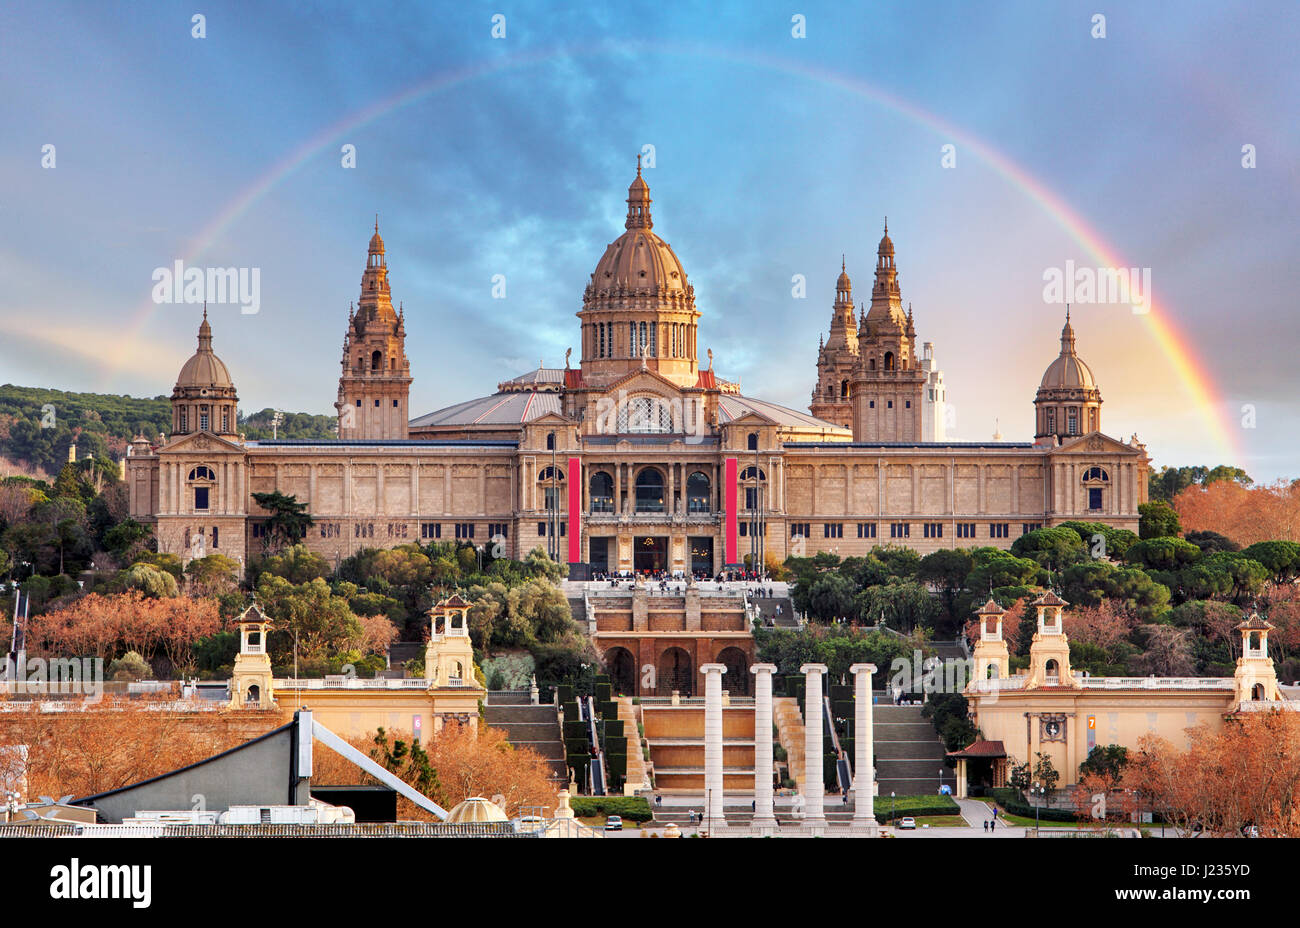 MNAC in Barcelona with rainbow - Stock Image